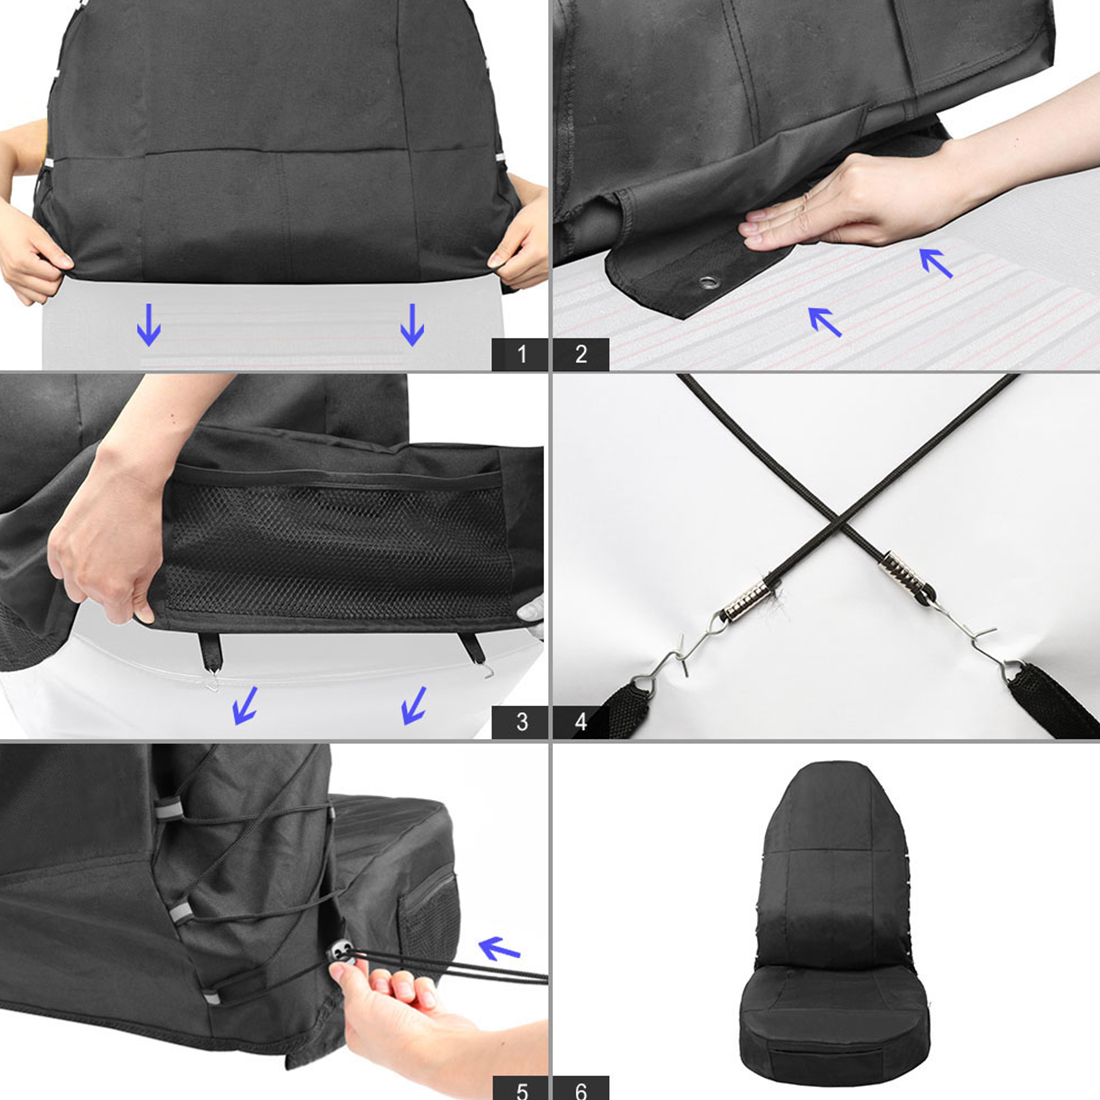 Dewtreetali Full Cover Waterproof Universal Car Seat Covers Single Front Seat Seat Protector Dustproof with Pockets Car styling in Automobiles Seat Covers from Automobiles Motorcycles